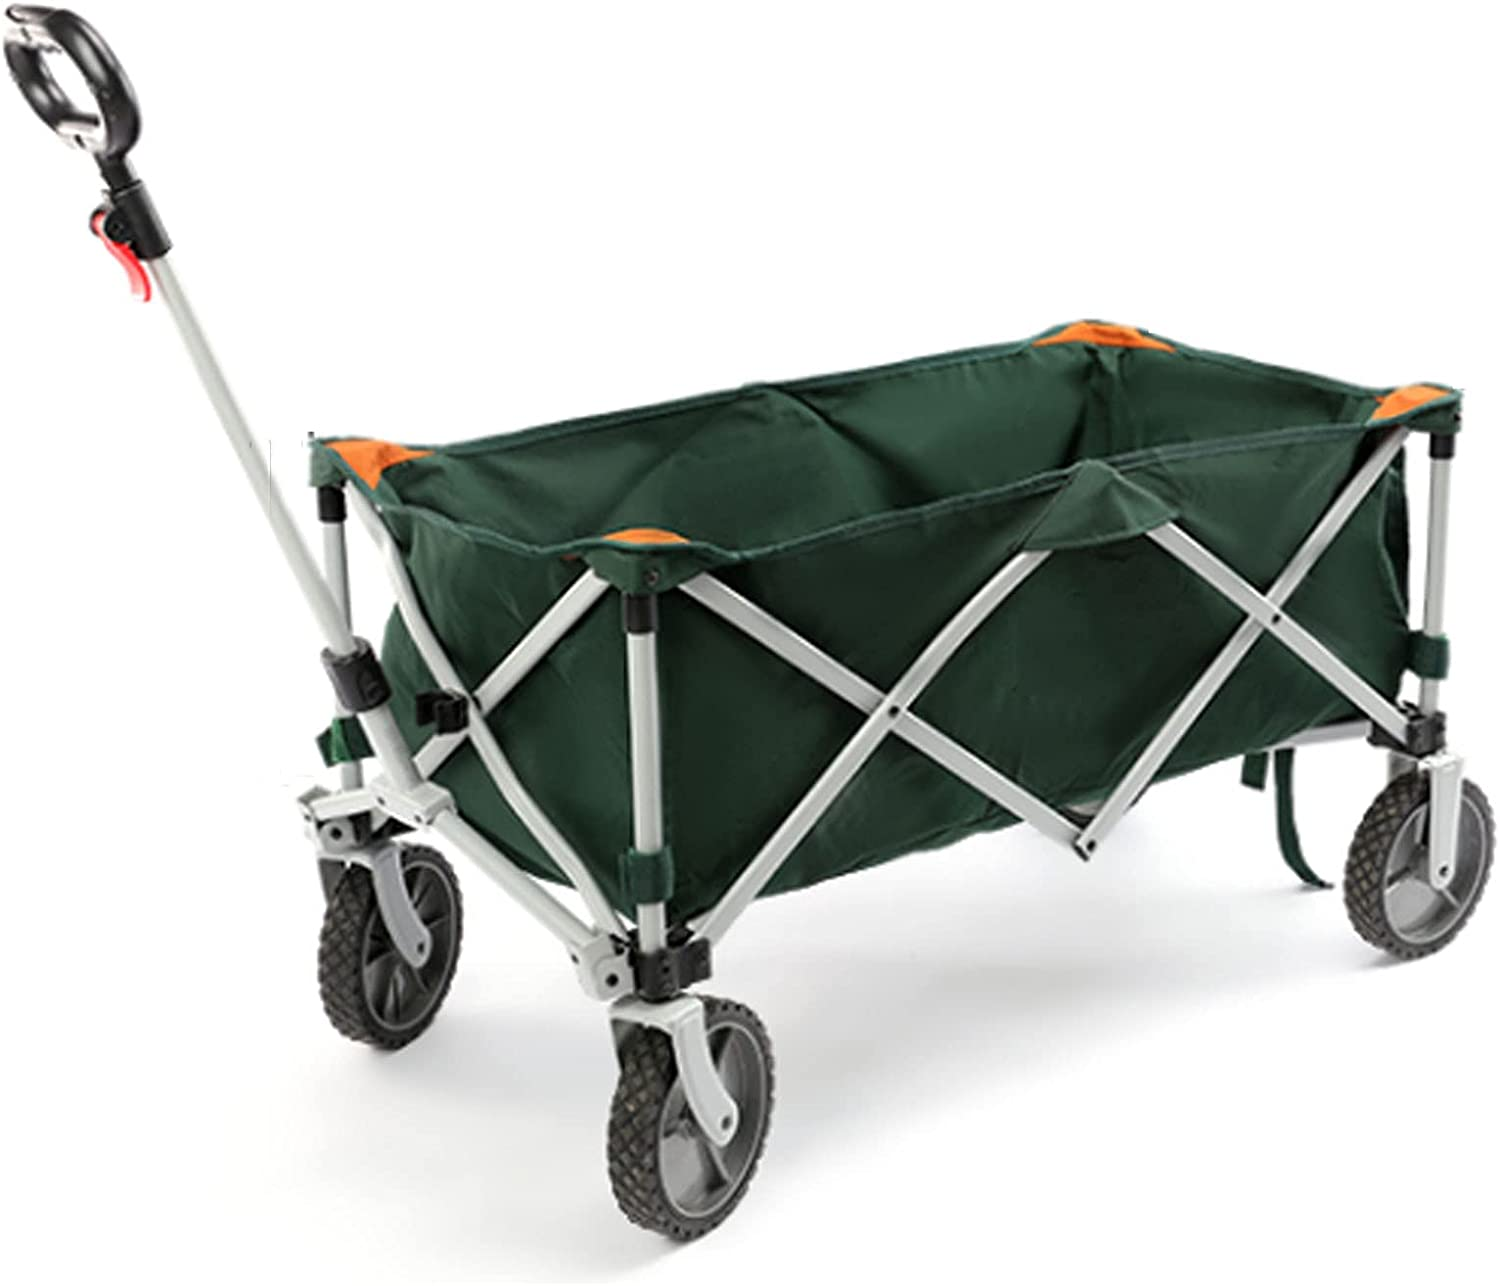 Middle Garden Popular products Cart Folding Car Hand Fashion Transport